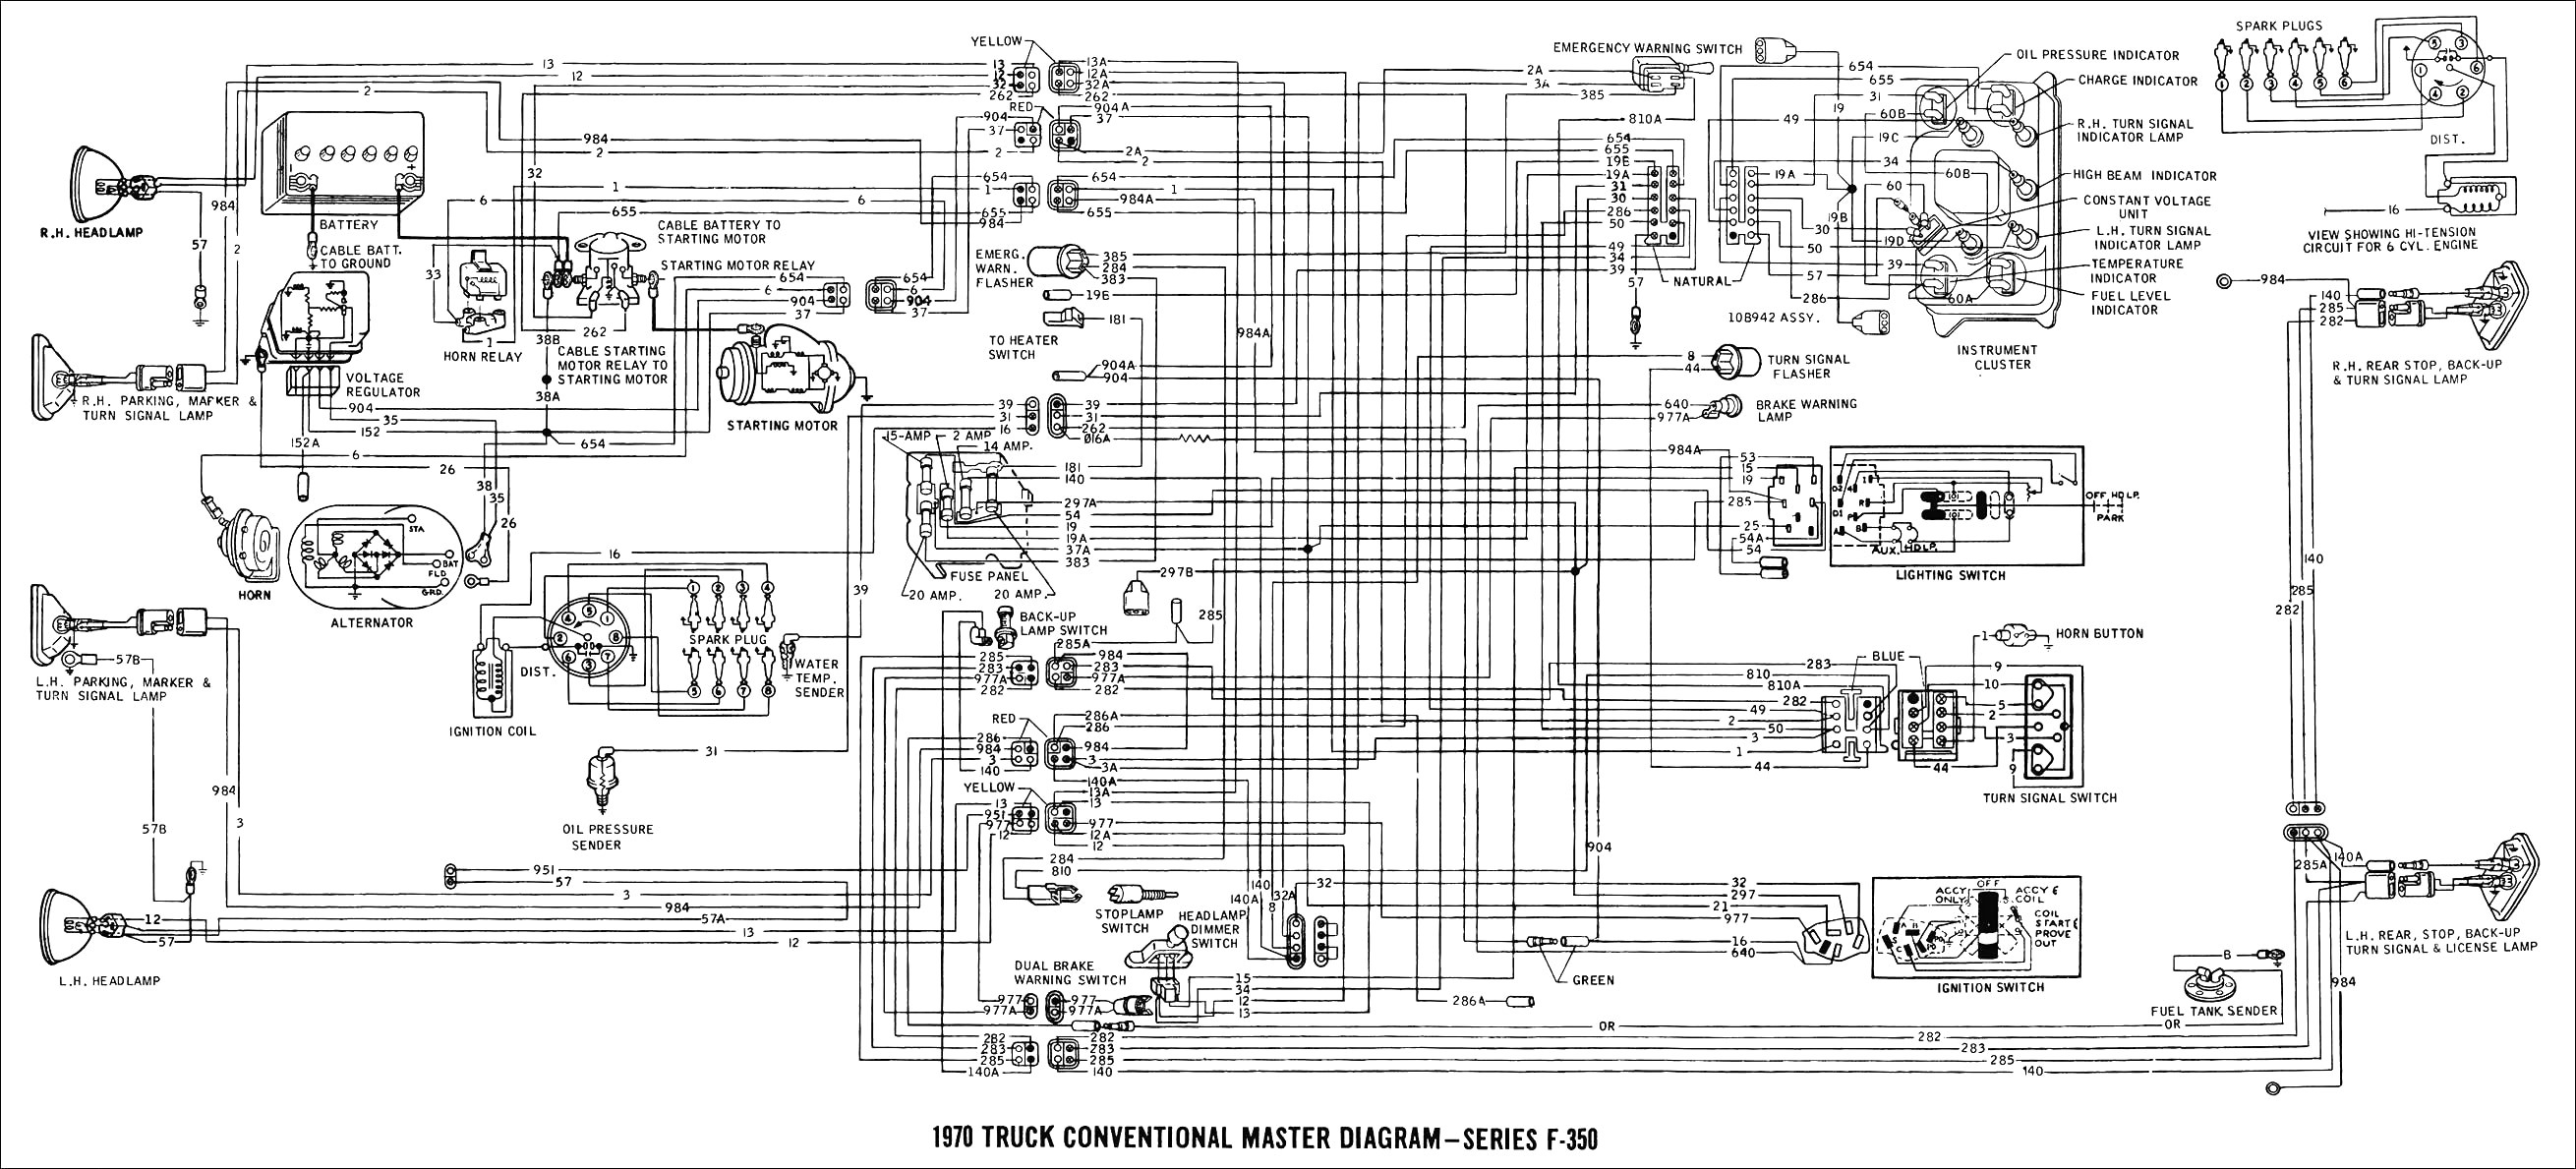 1994 Ford Ranger 4 0 Engine Diagram | New Wiring Resources 2019  Ford Explorer Engine Diagram on